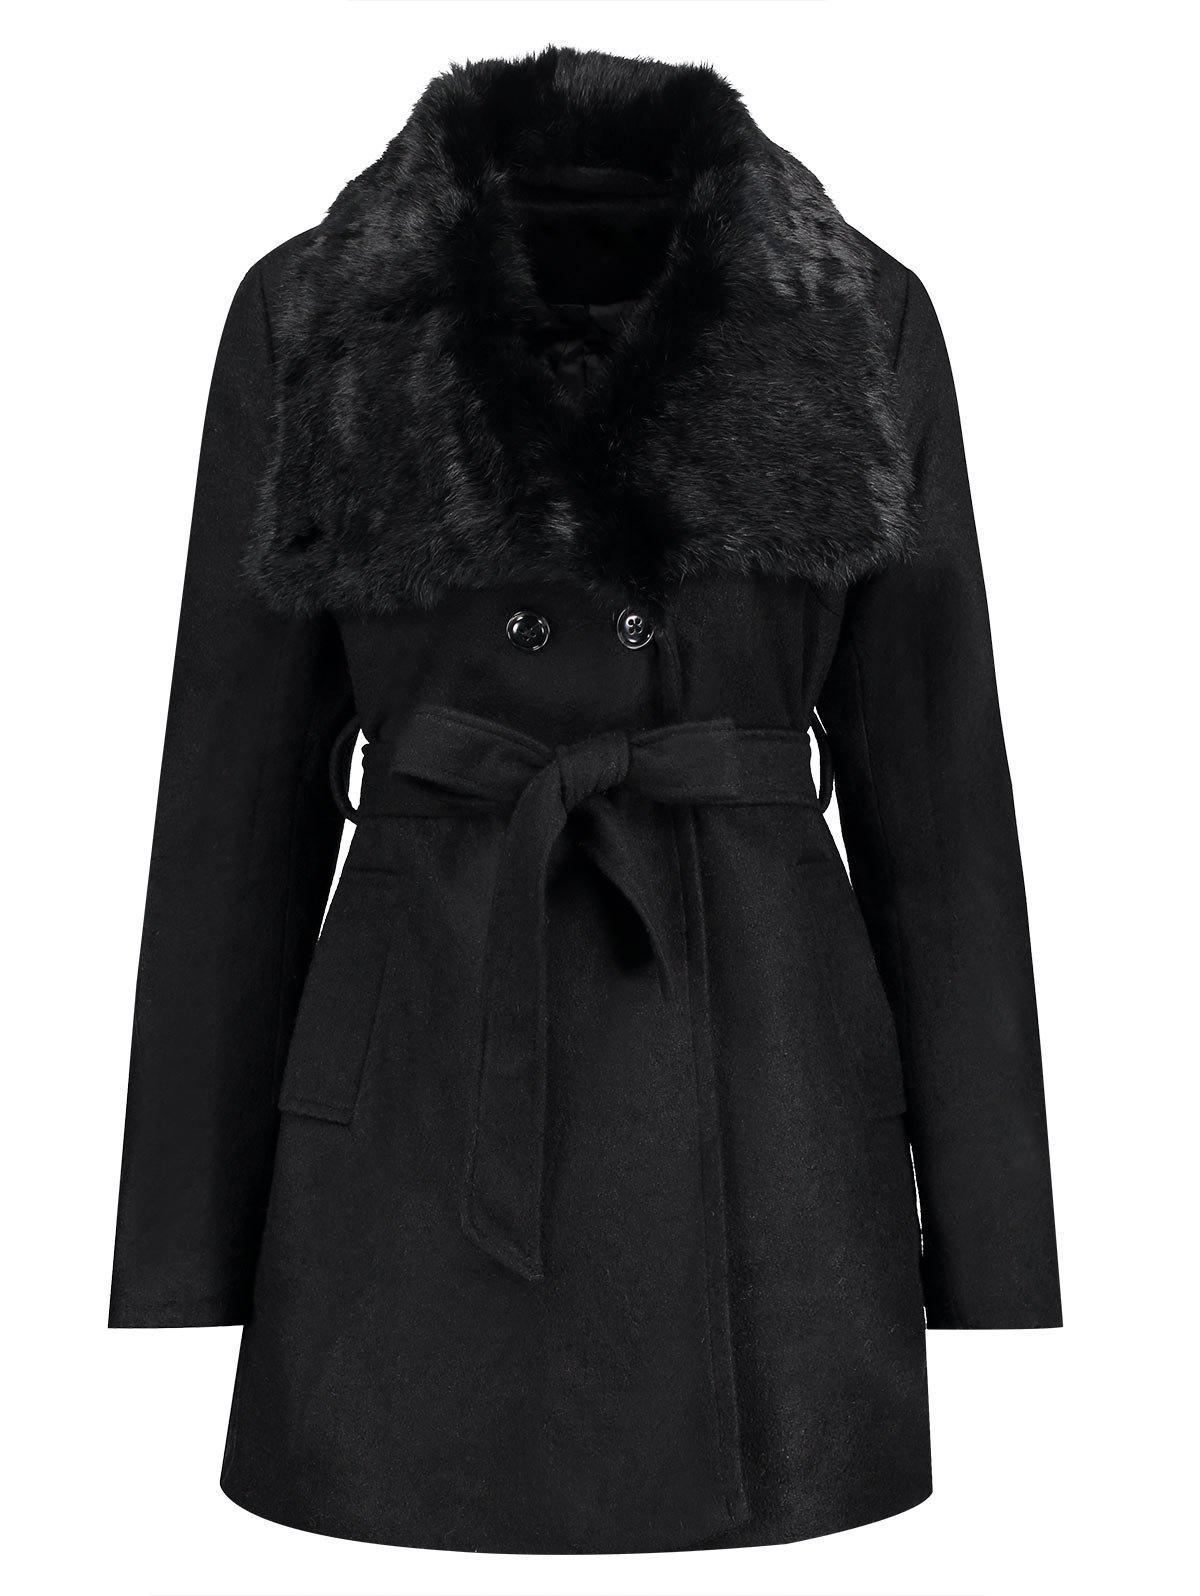 Plus Size Belted Fur Collar CoatWOMEN<br><br>Size: 5XL; Color: BLACK; Clothes Type: Wool &amp; Blends; Material: Cotton,Polyester,Wool; Type: Slim; Shirt Length: Long; Sleeve Length: Full; Collar: Lapel; Pattern Type: Solid; Style: Casual; Season: Winter; With Belt: Yes; Weight: 1.2700kg; Package Contents: 1 x Coat  1 x Belt;